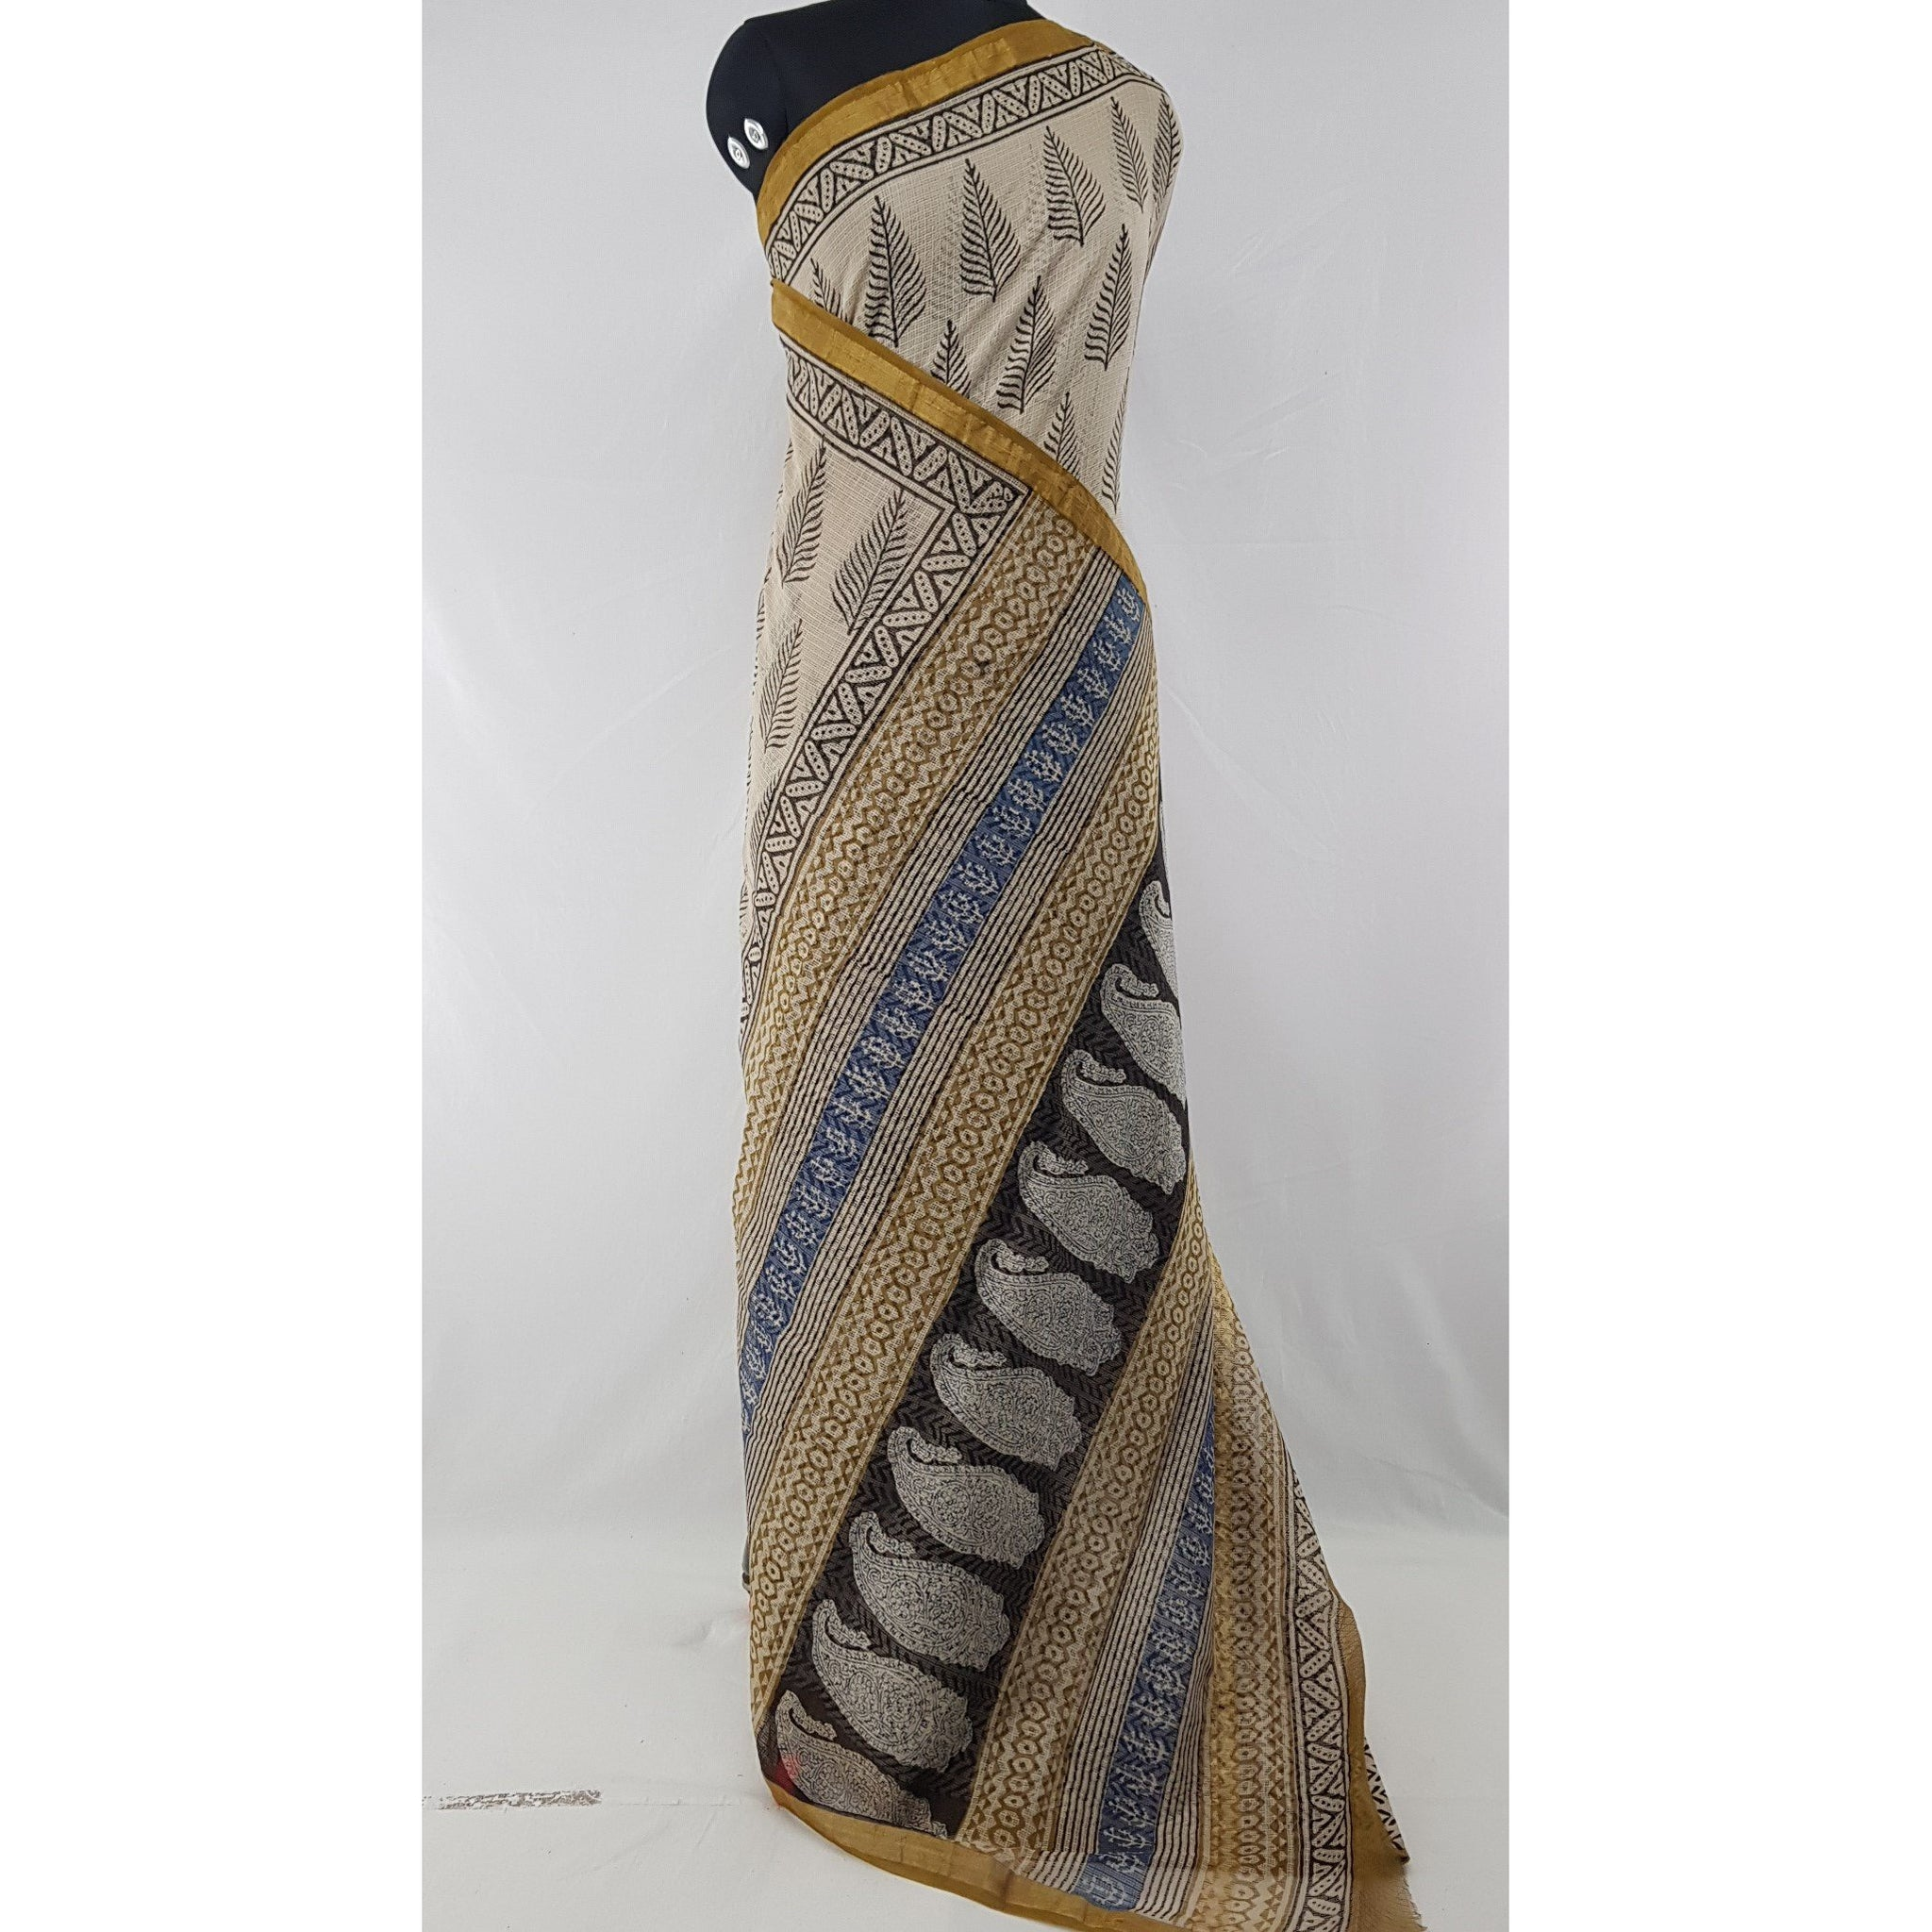 Cream and Black Color Hand Block Printed Kota Cotton Saree with Zari border - Vinshika